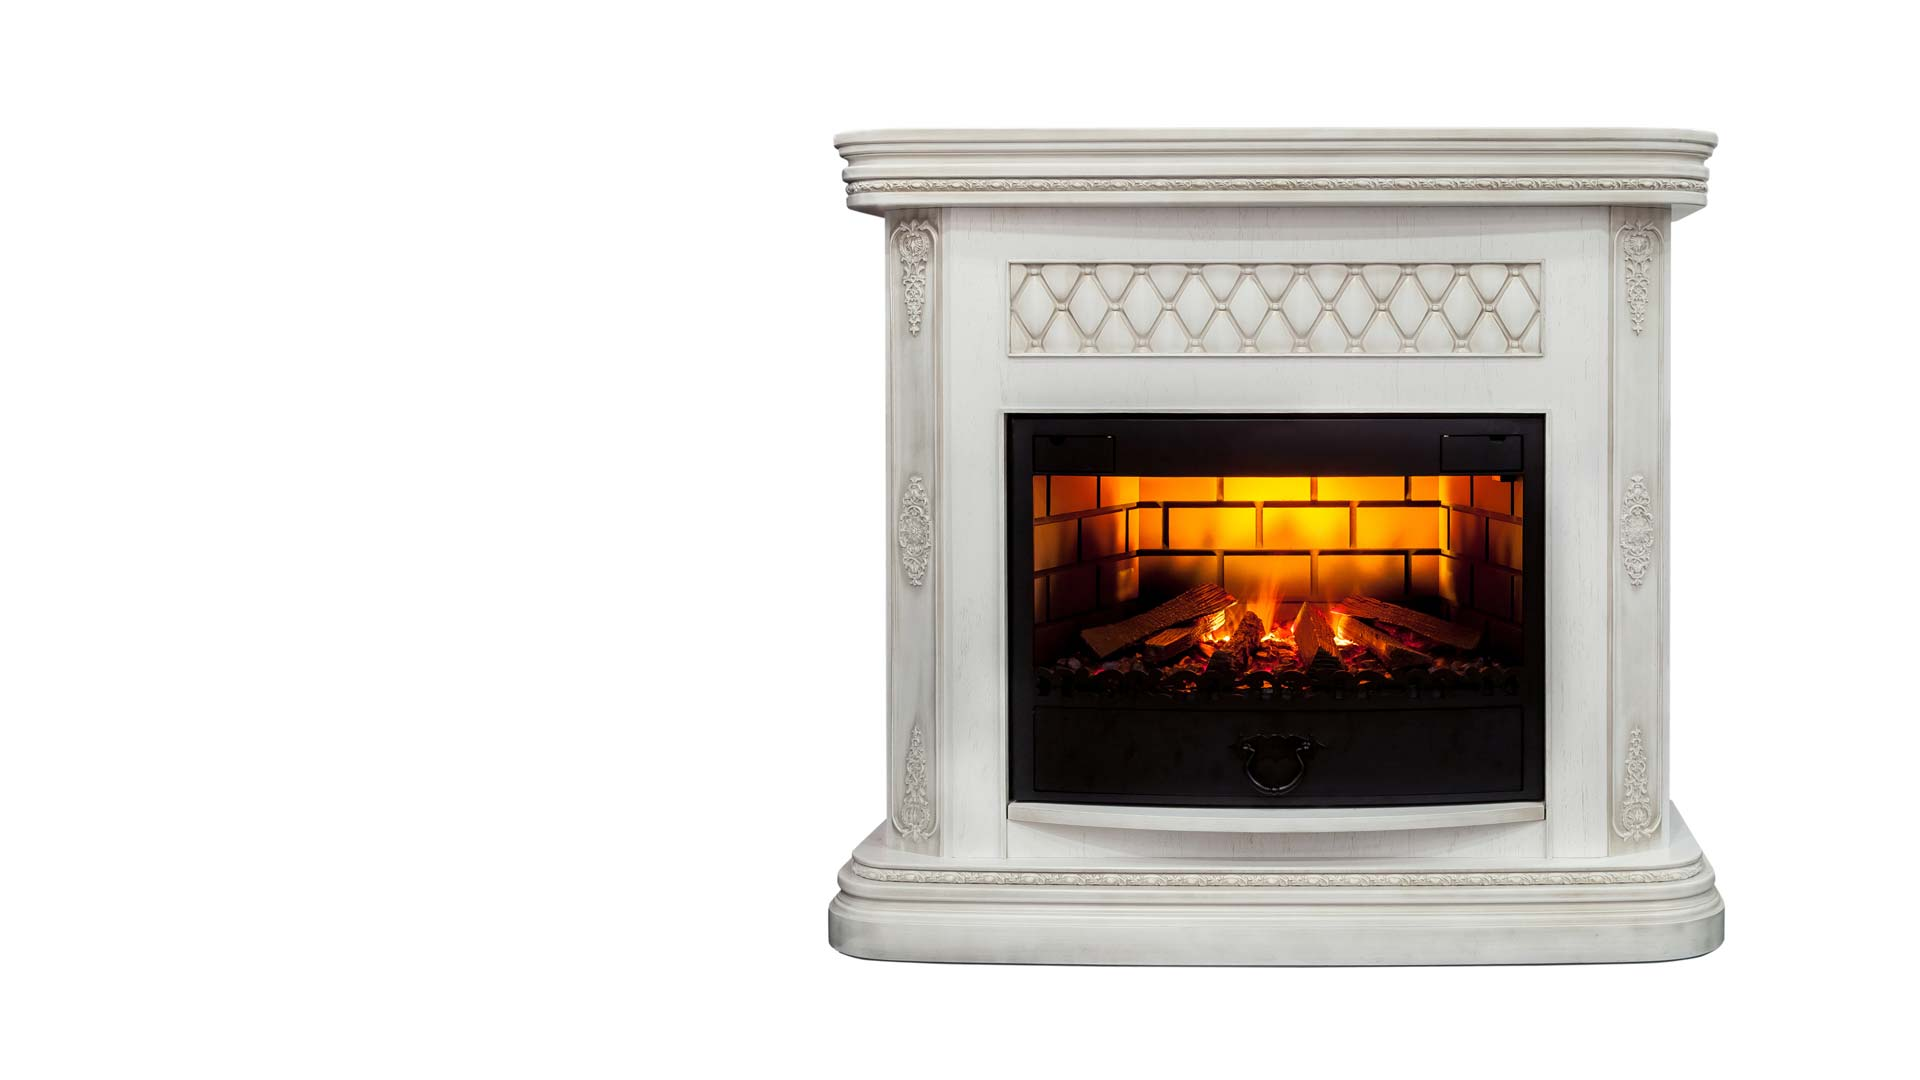 Avalon Gas Fireplace Inserts A Cozy Fireplace Fireplace Store In Naperville Crest Hill And